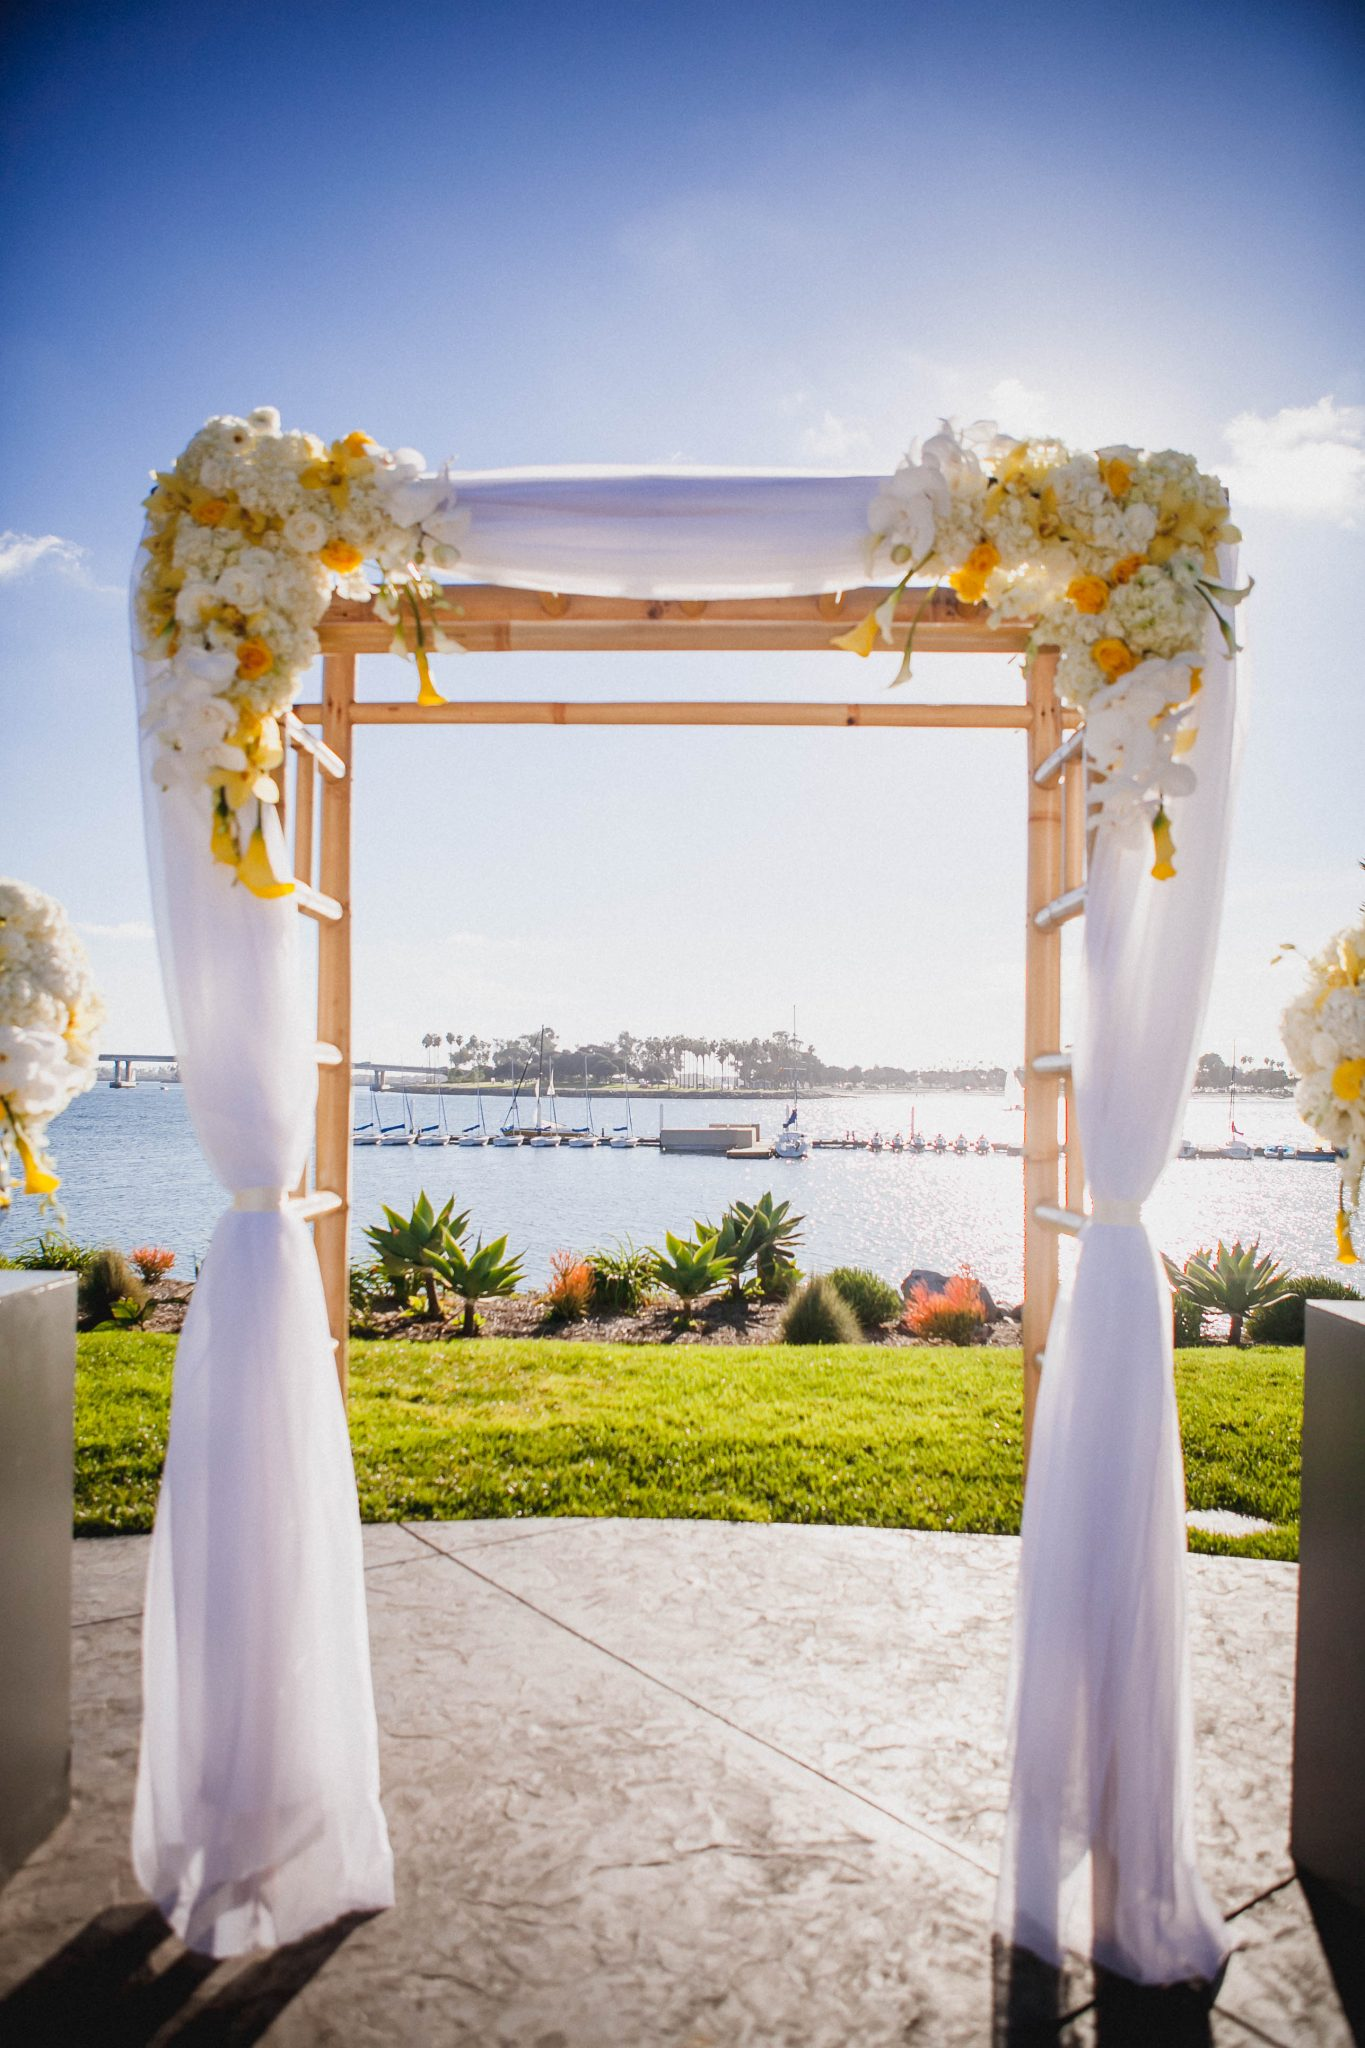 Wooden arbor for wedding ceremony overlooking the bay in San Diego